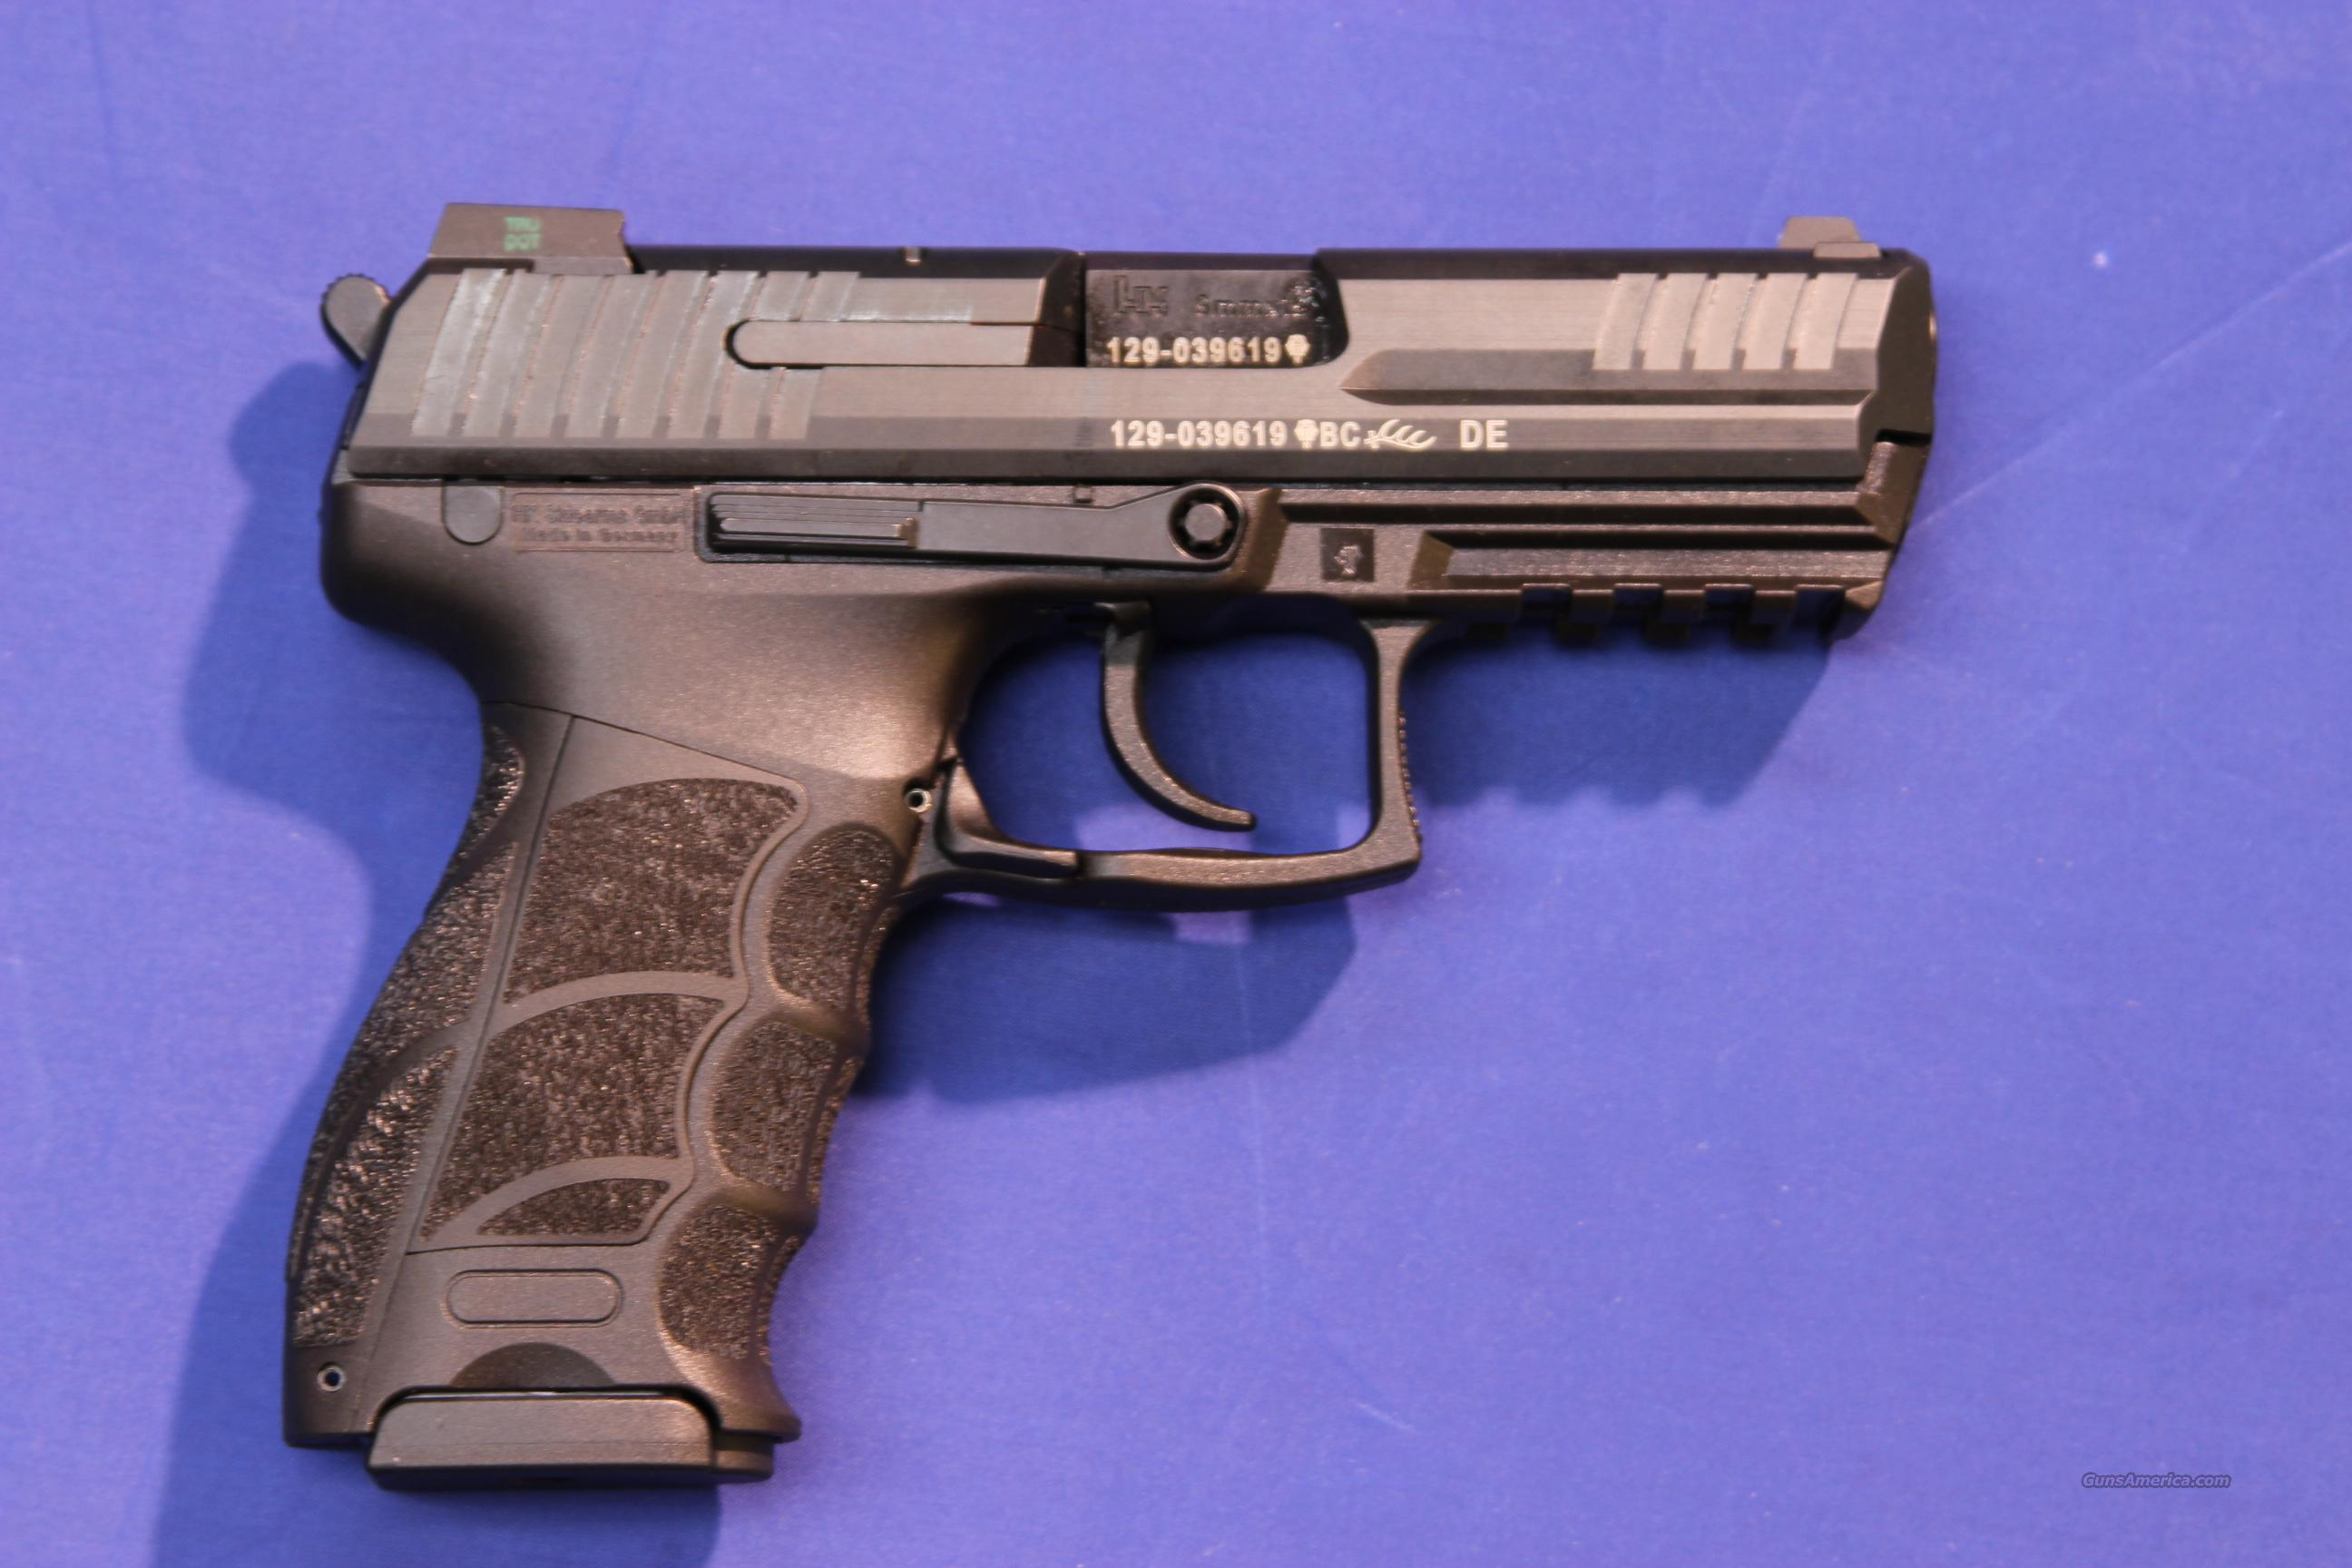 HECKLER & KOCH P30 9mm - NEW  Guns > Pistols > Heckler & Koch Pistols > Polymer Frame